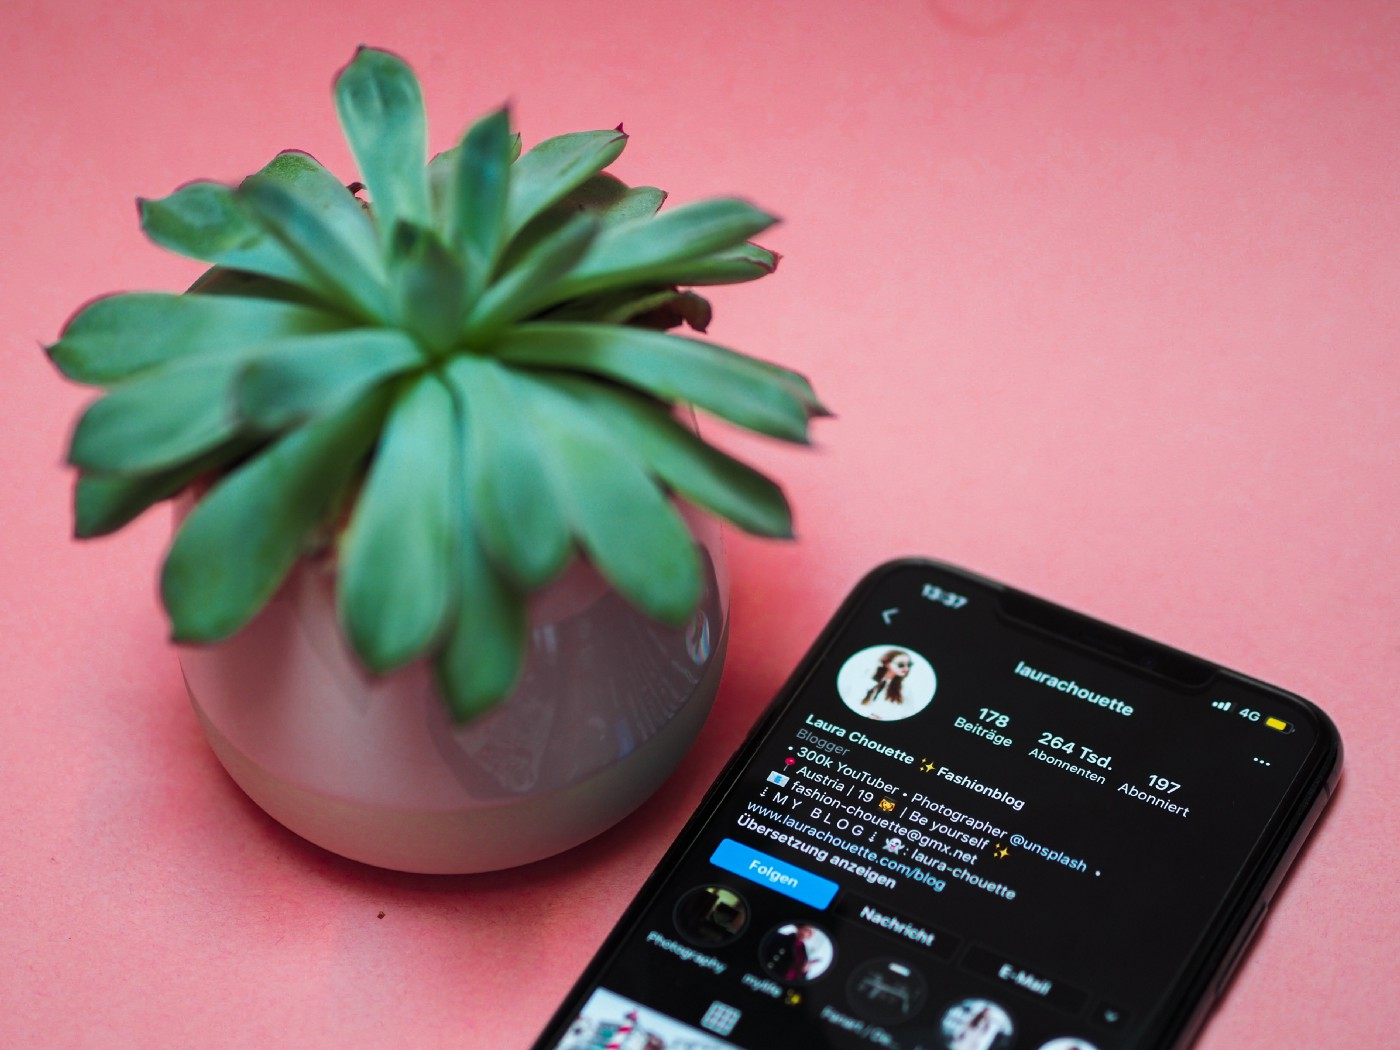 A succulent with smartphone showing Instagram profile